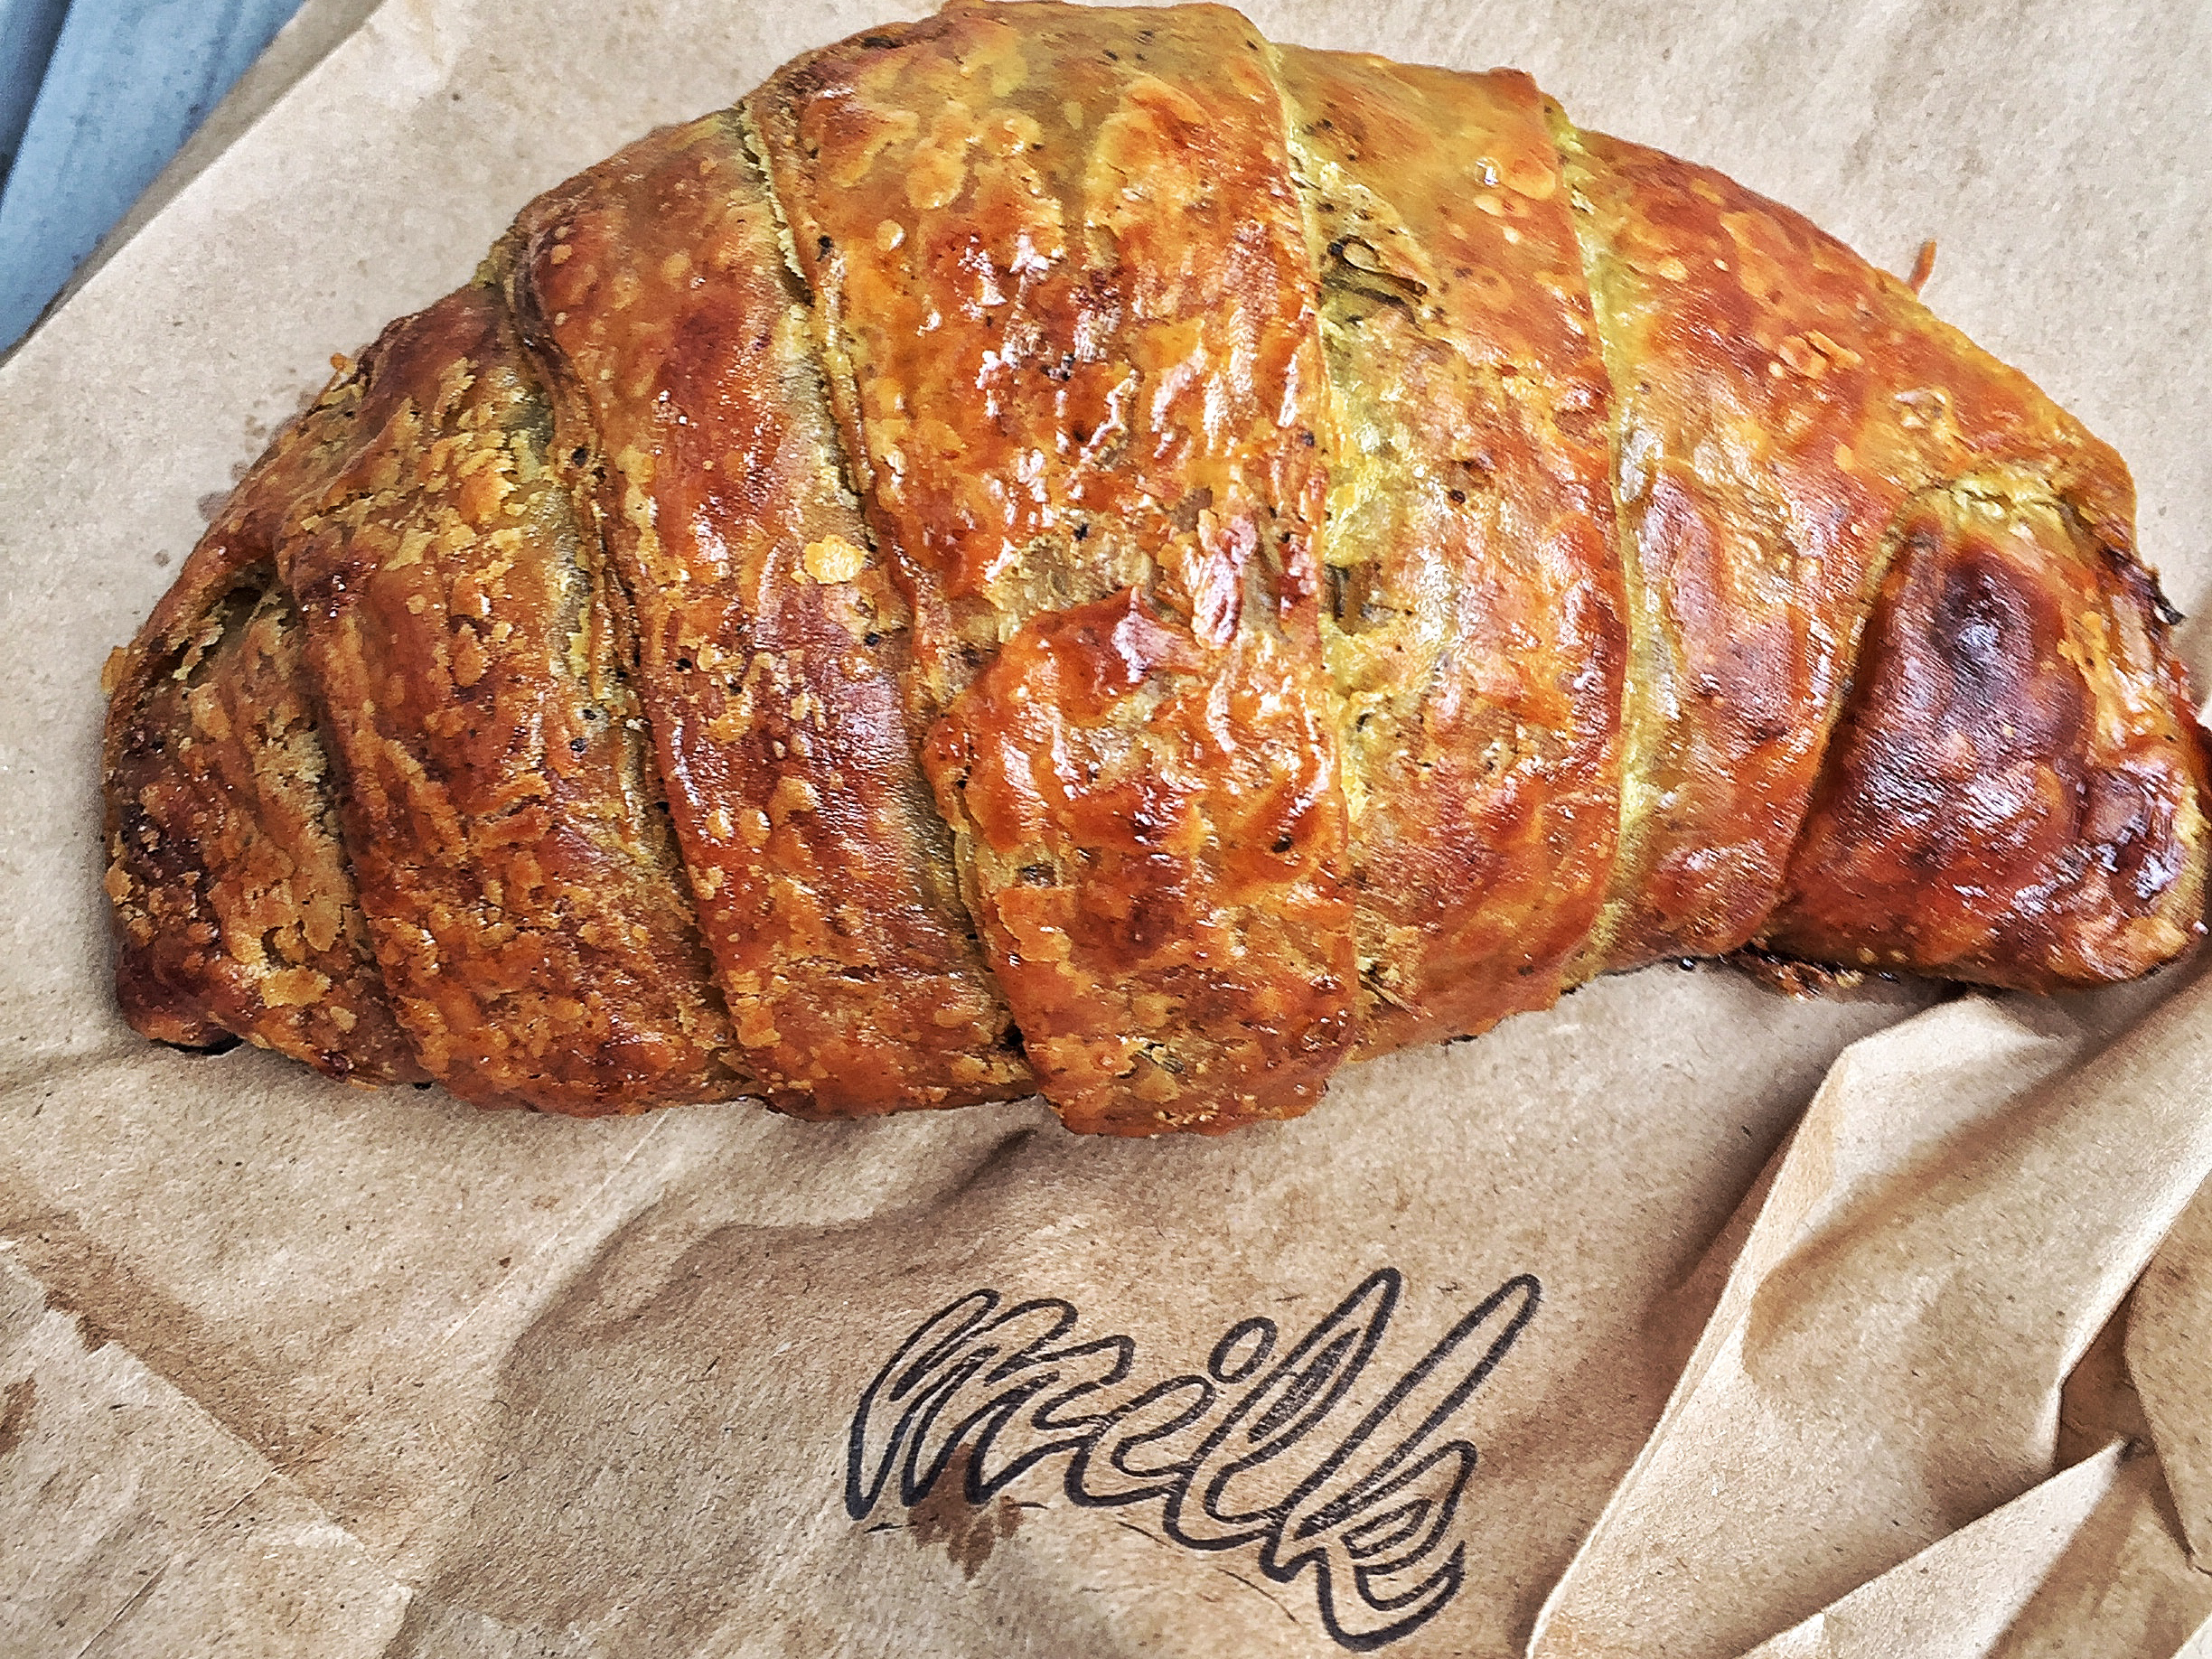 [A Milk Bar croissant from the East Village location.]